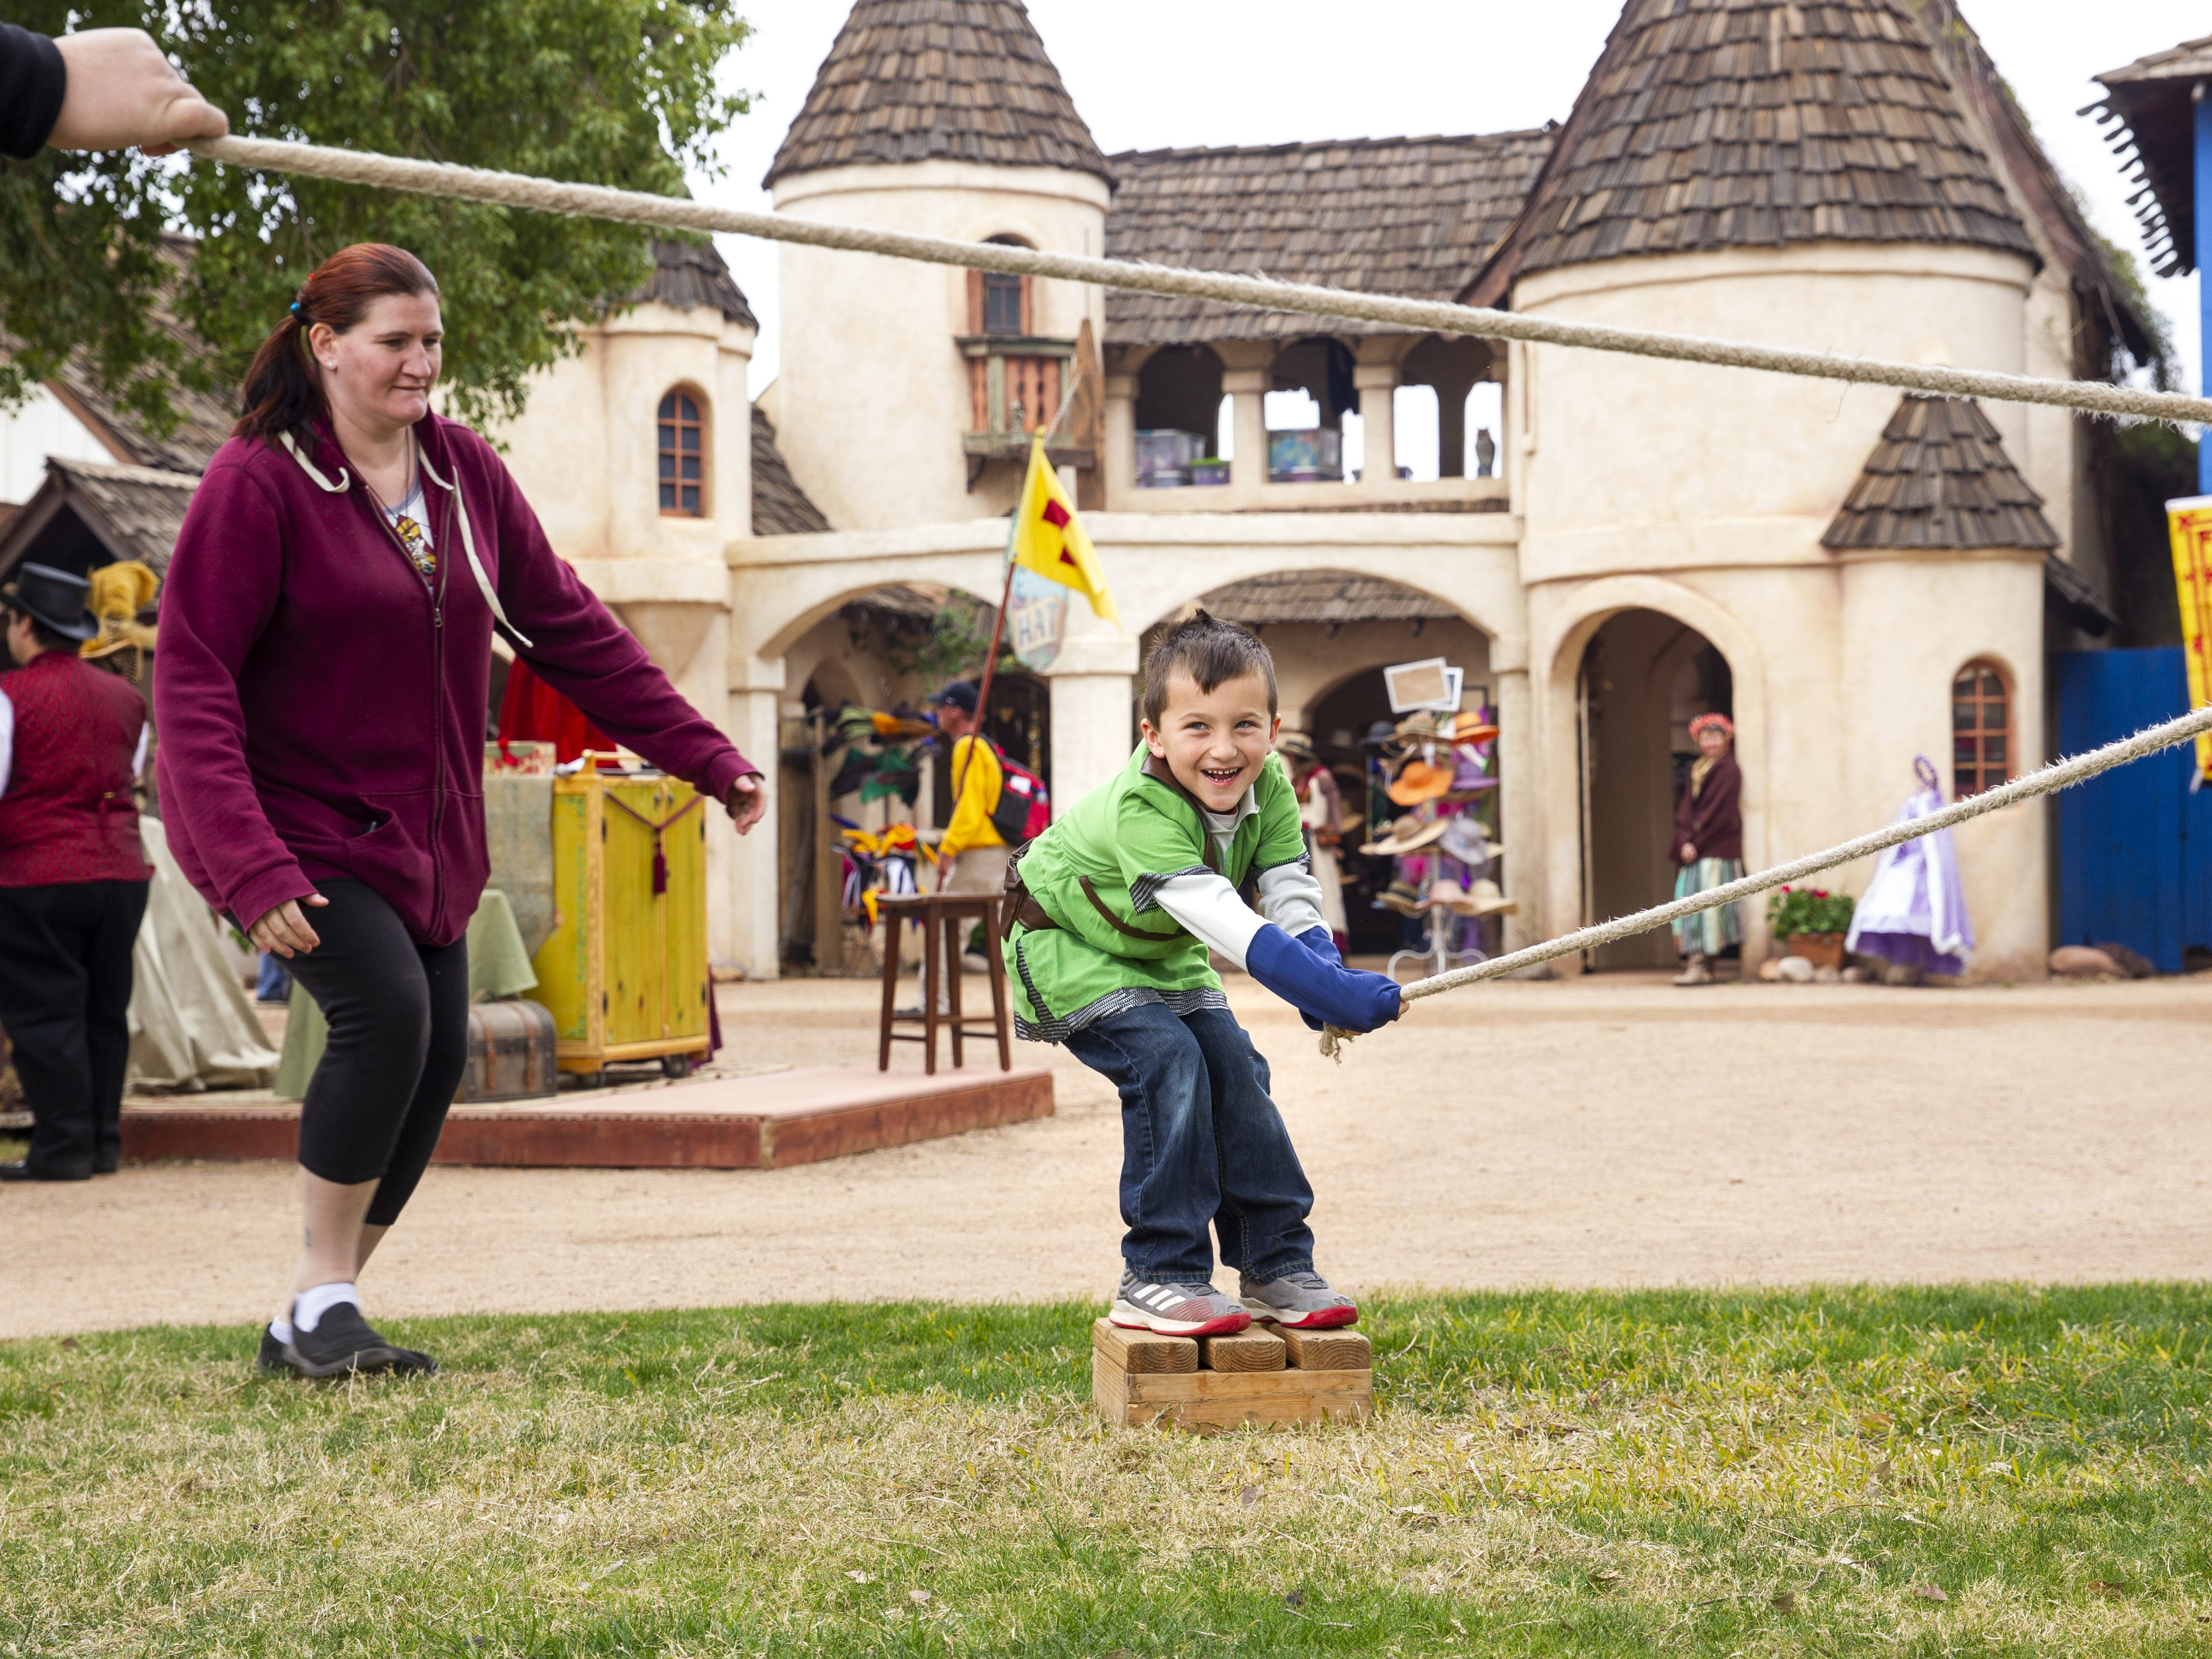 Andy Weeks, in green, competes against his family in a game of tug-of-war as Heather Vanderwall comes up from behind to help him at the Arizona Renaissance Festival 2019 on Feb. 9, 2019 in Gold Canyon, Ariz.